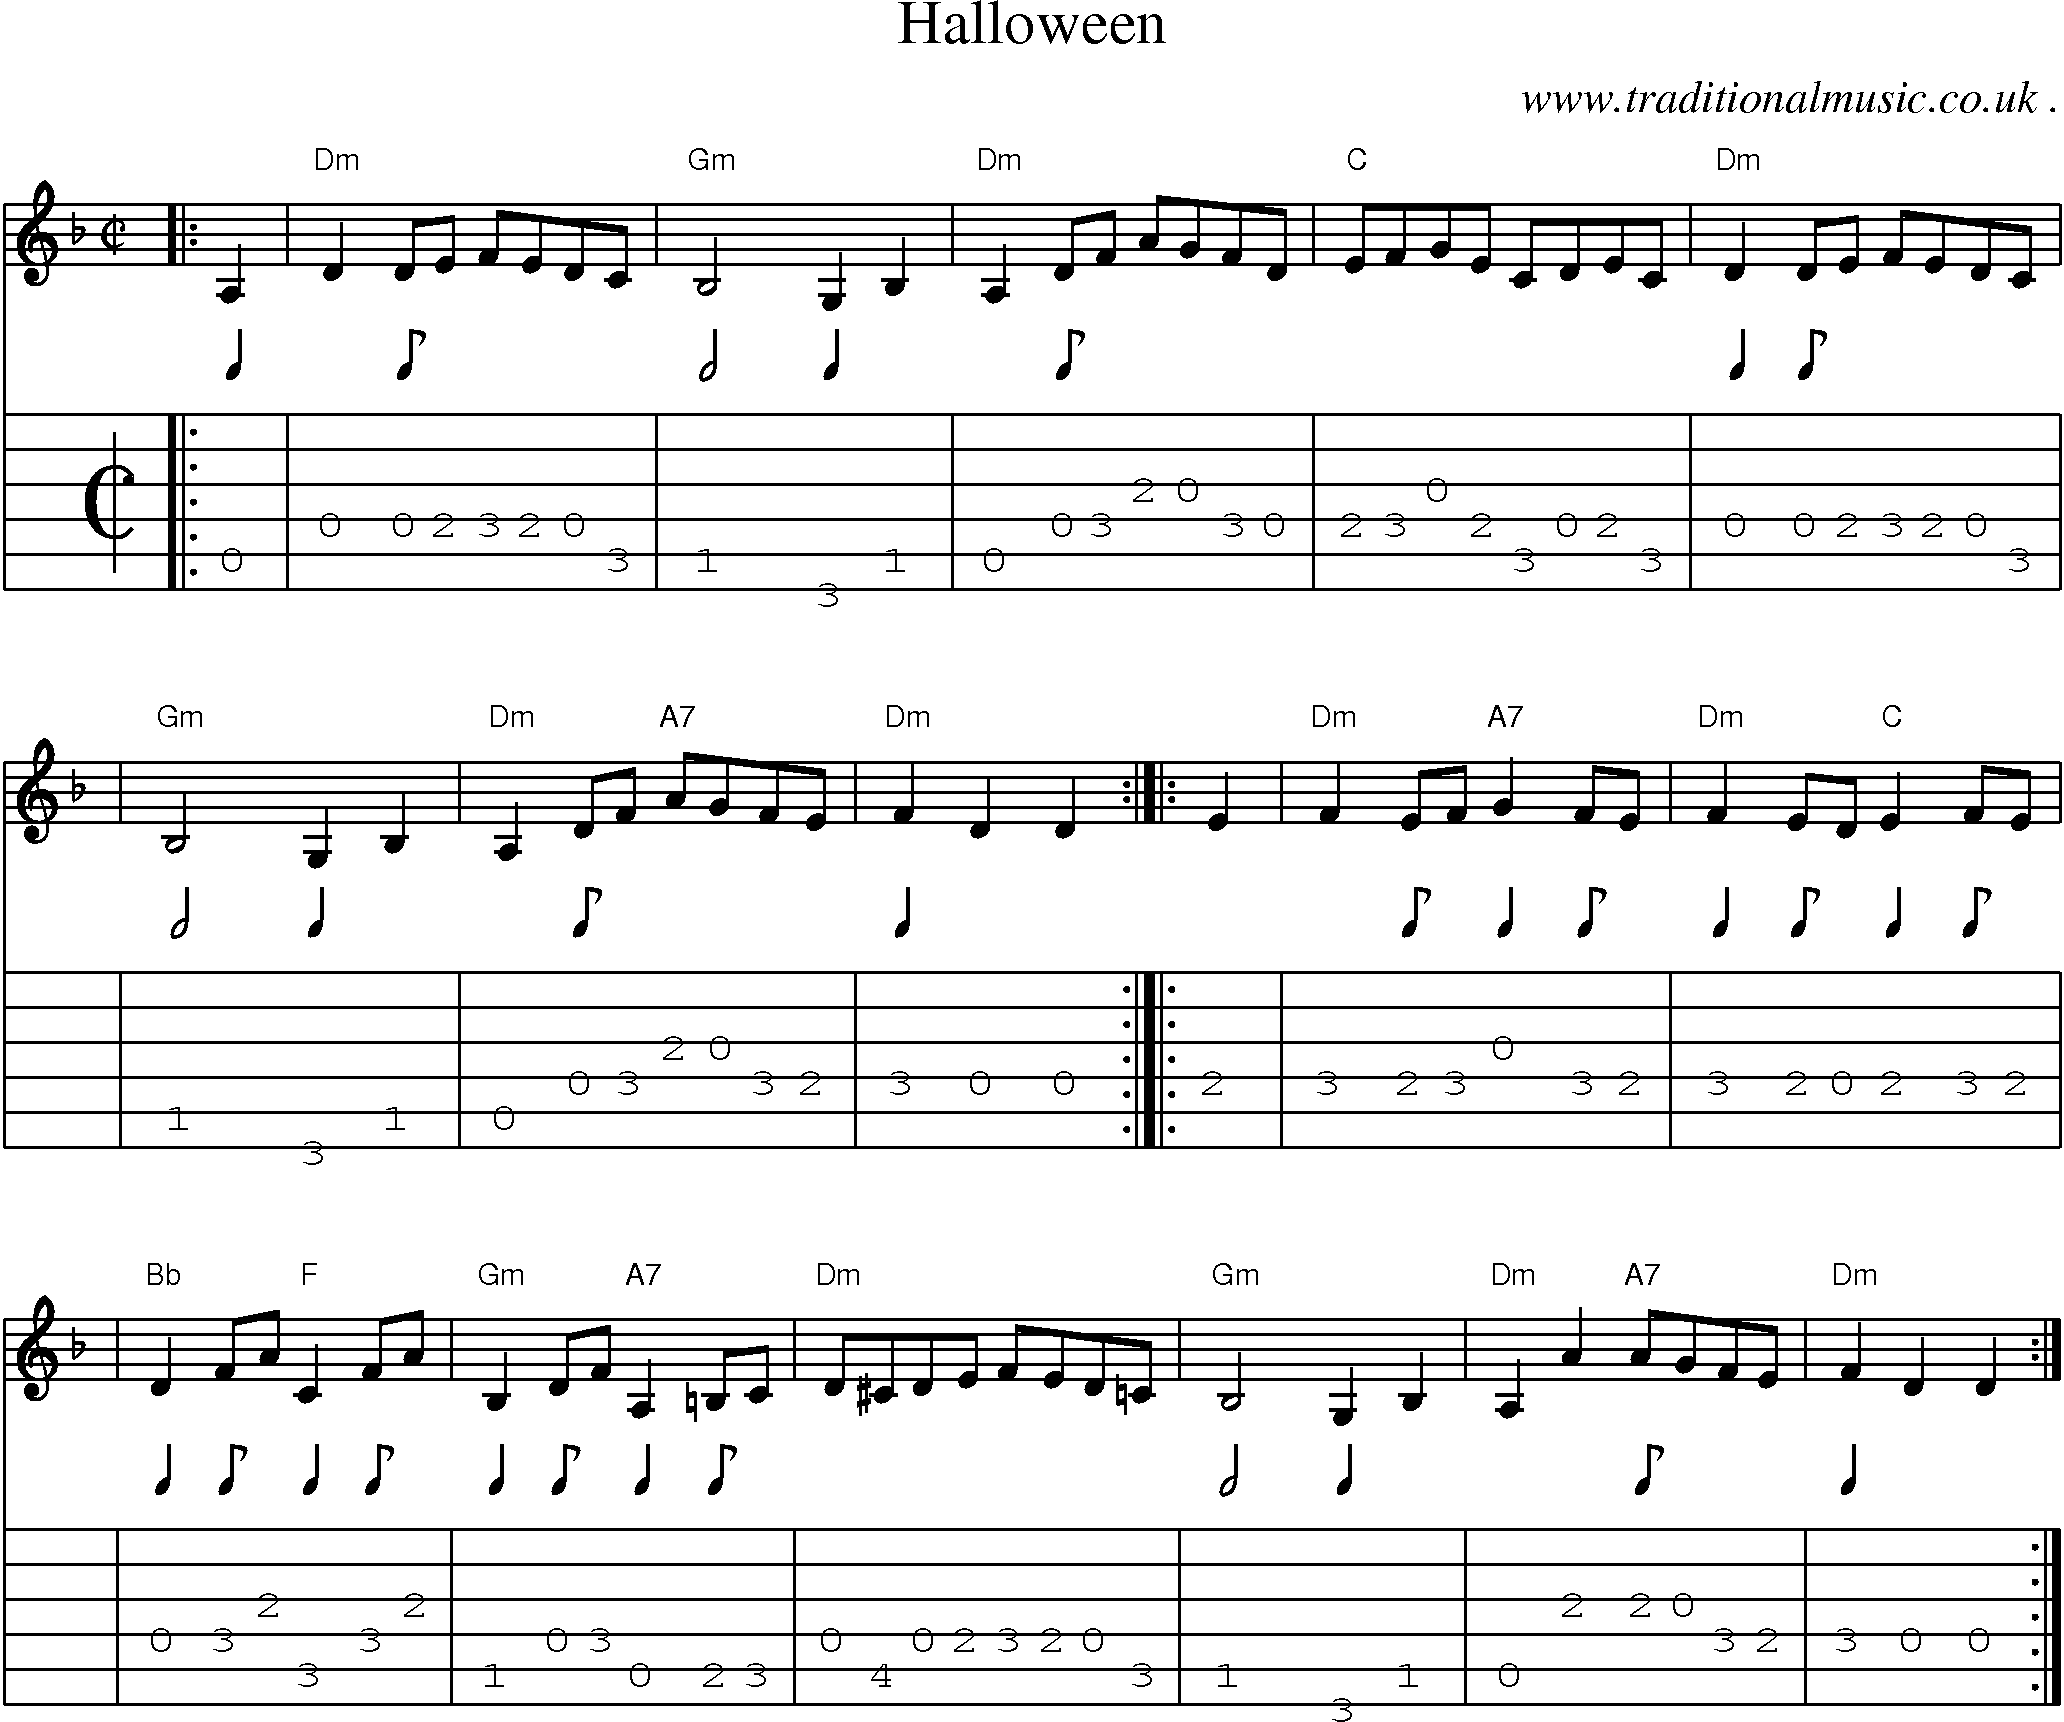 sheet music score chords and guitar tabs for halloween